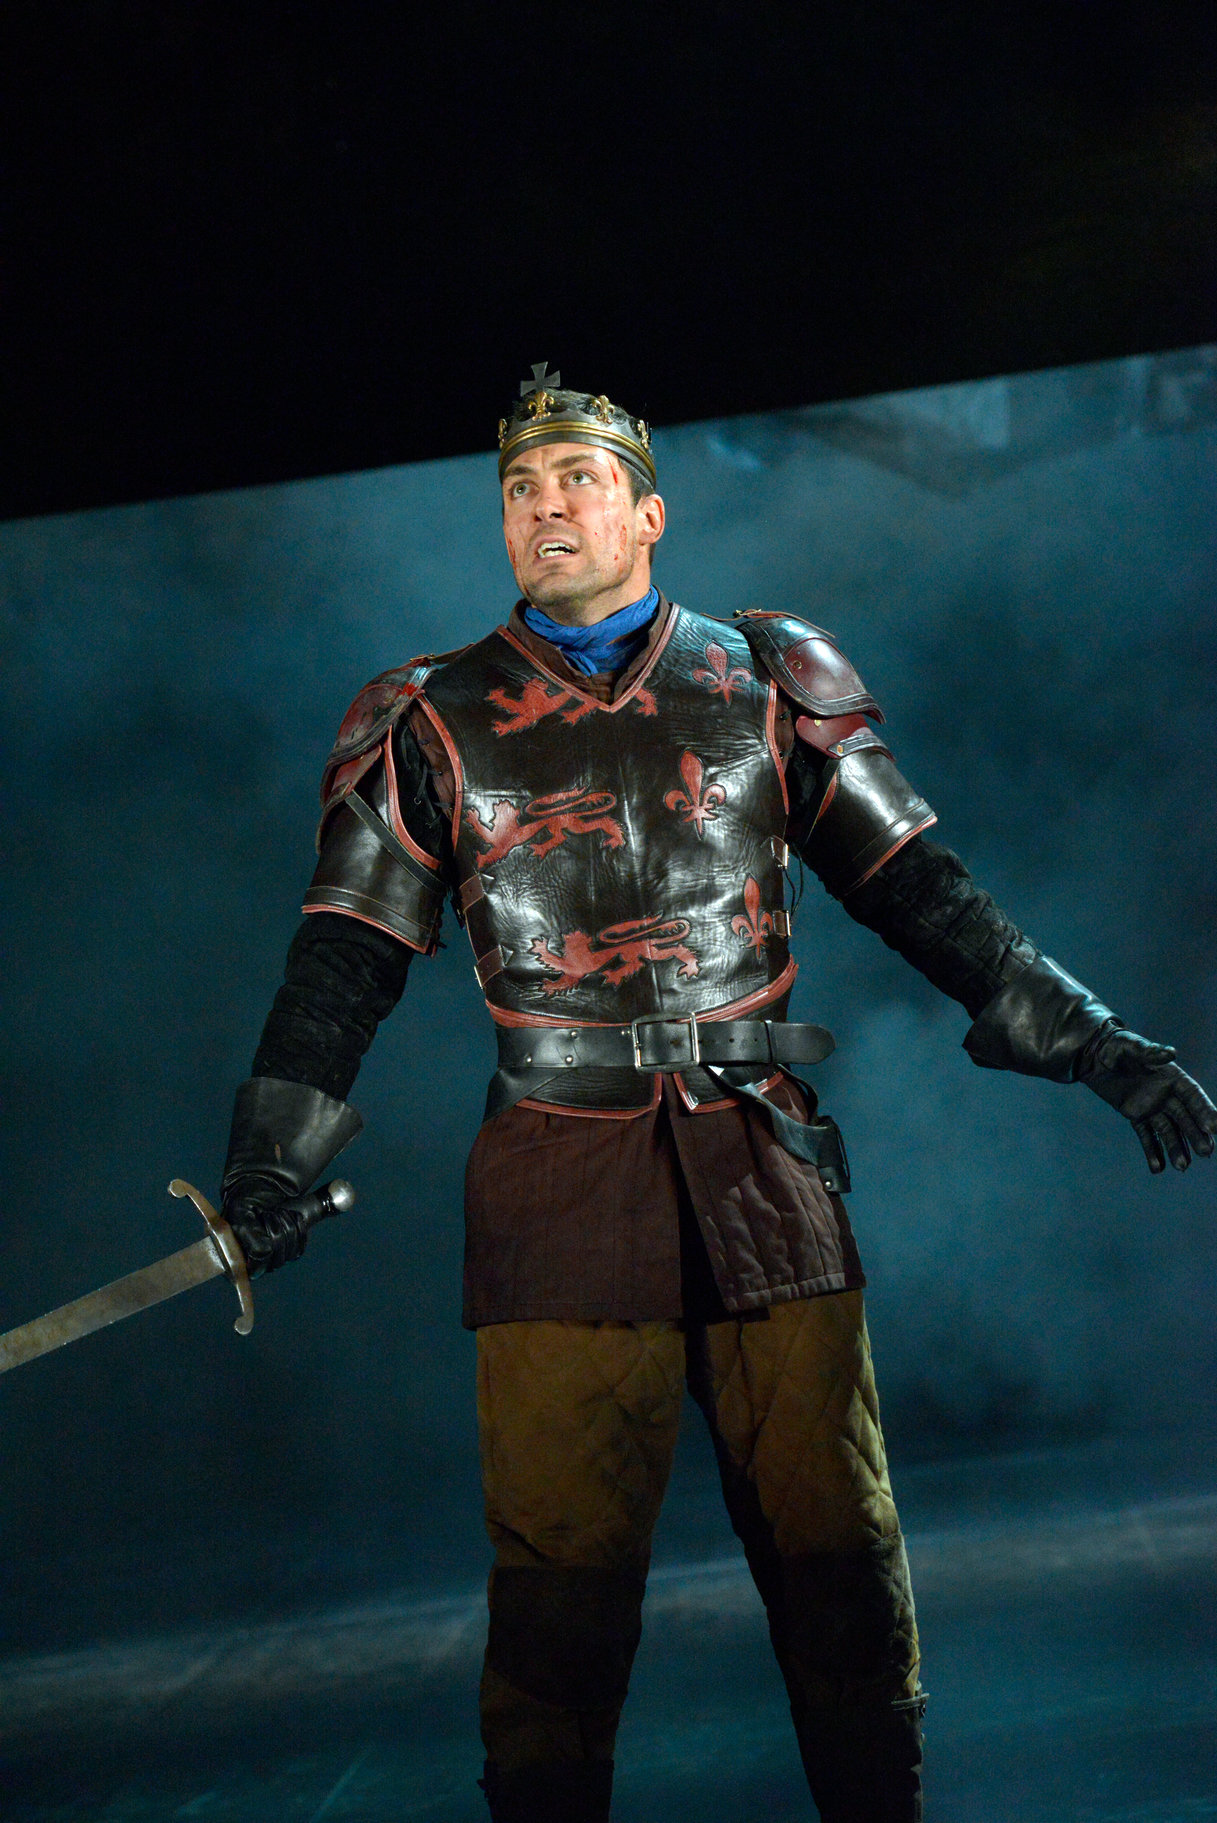 Henry stands on stage alone, in armour with his sword outstretched as he rallies his men in the 2015 production of Henry V